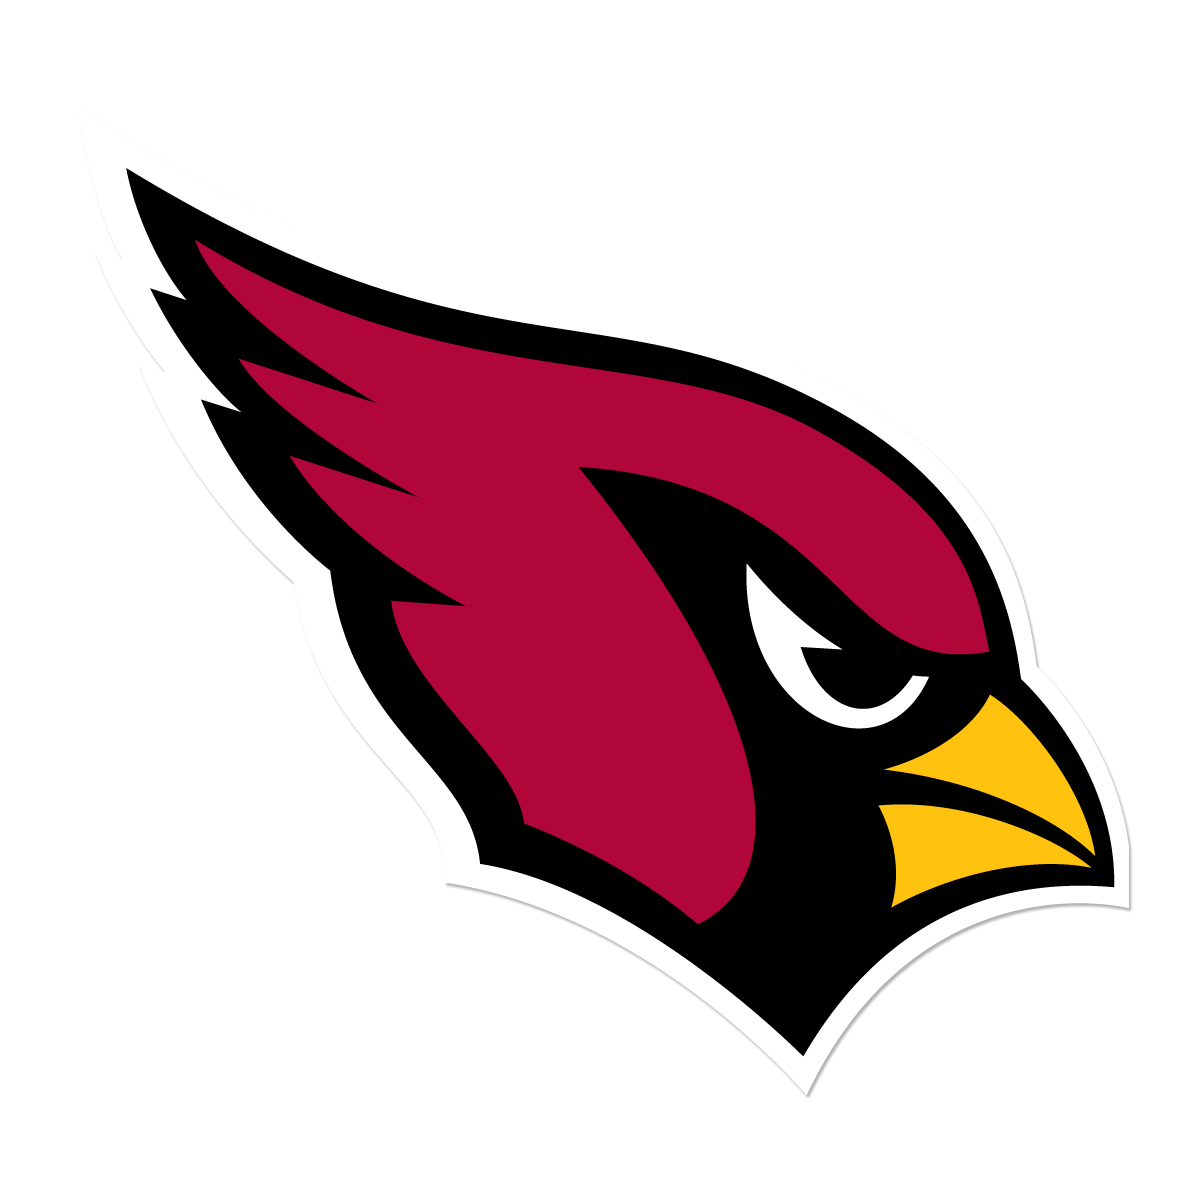 Nfl heads png. The arizona cardinals will